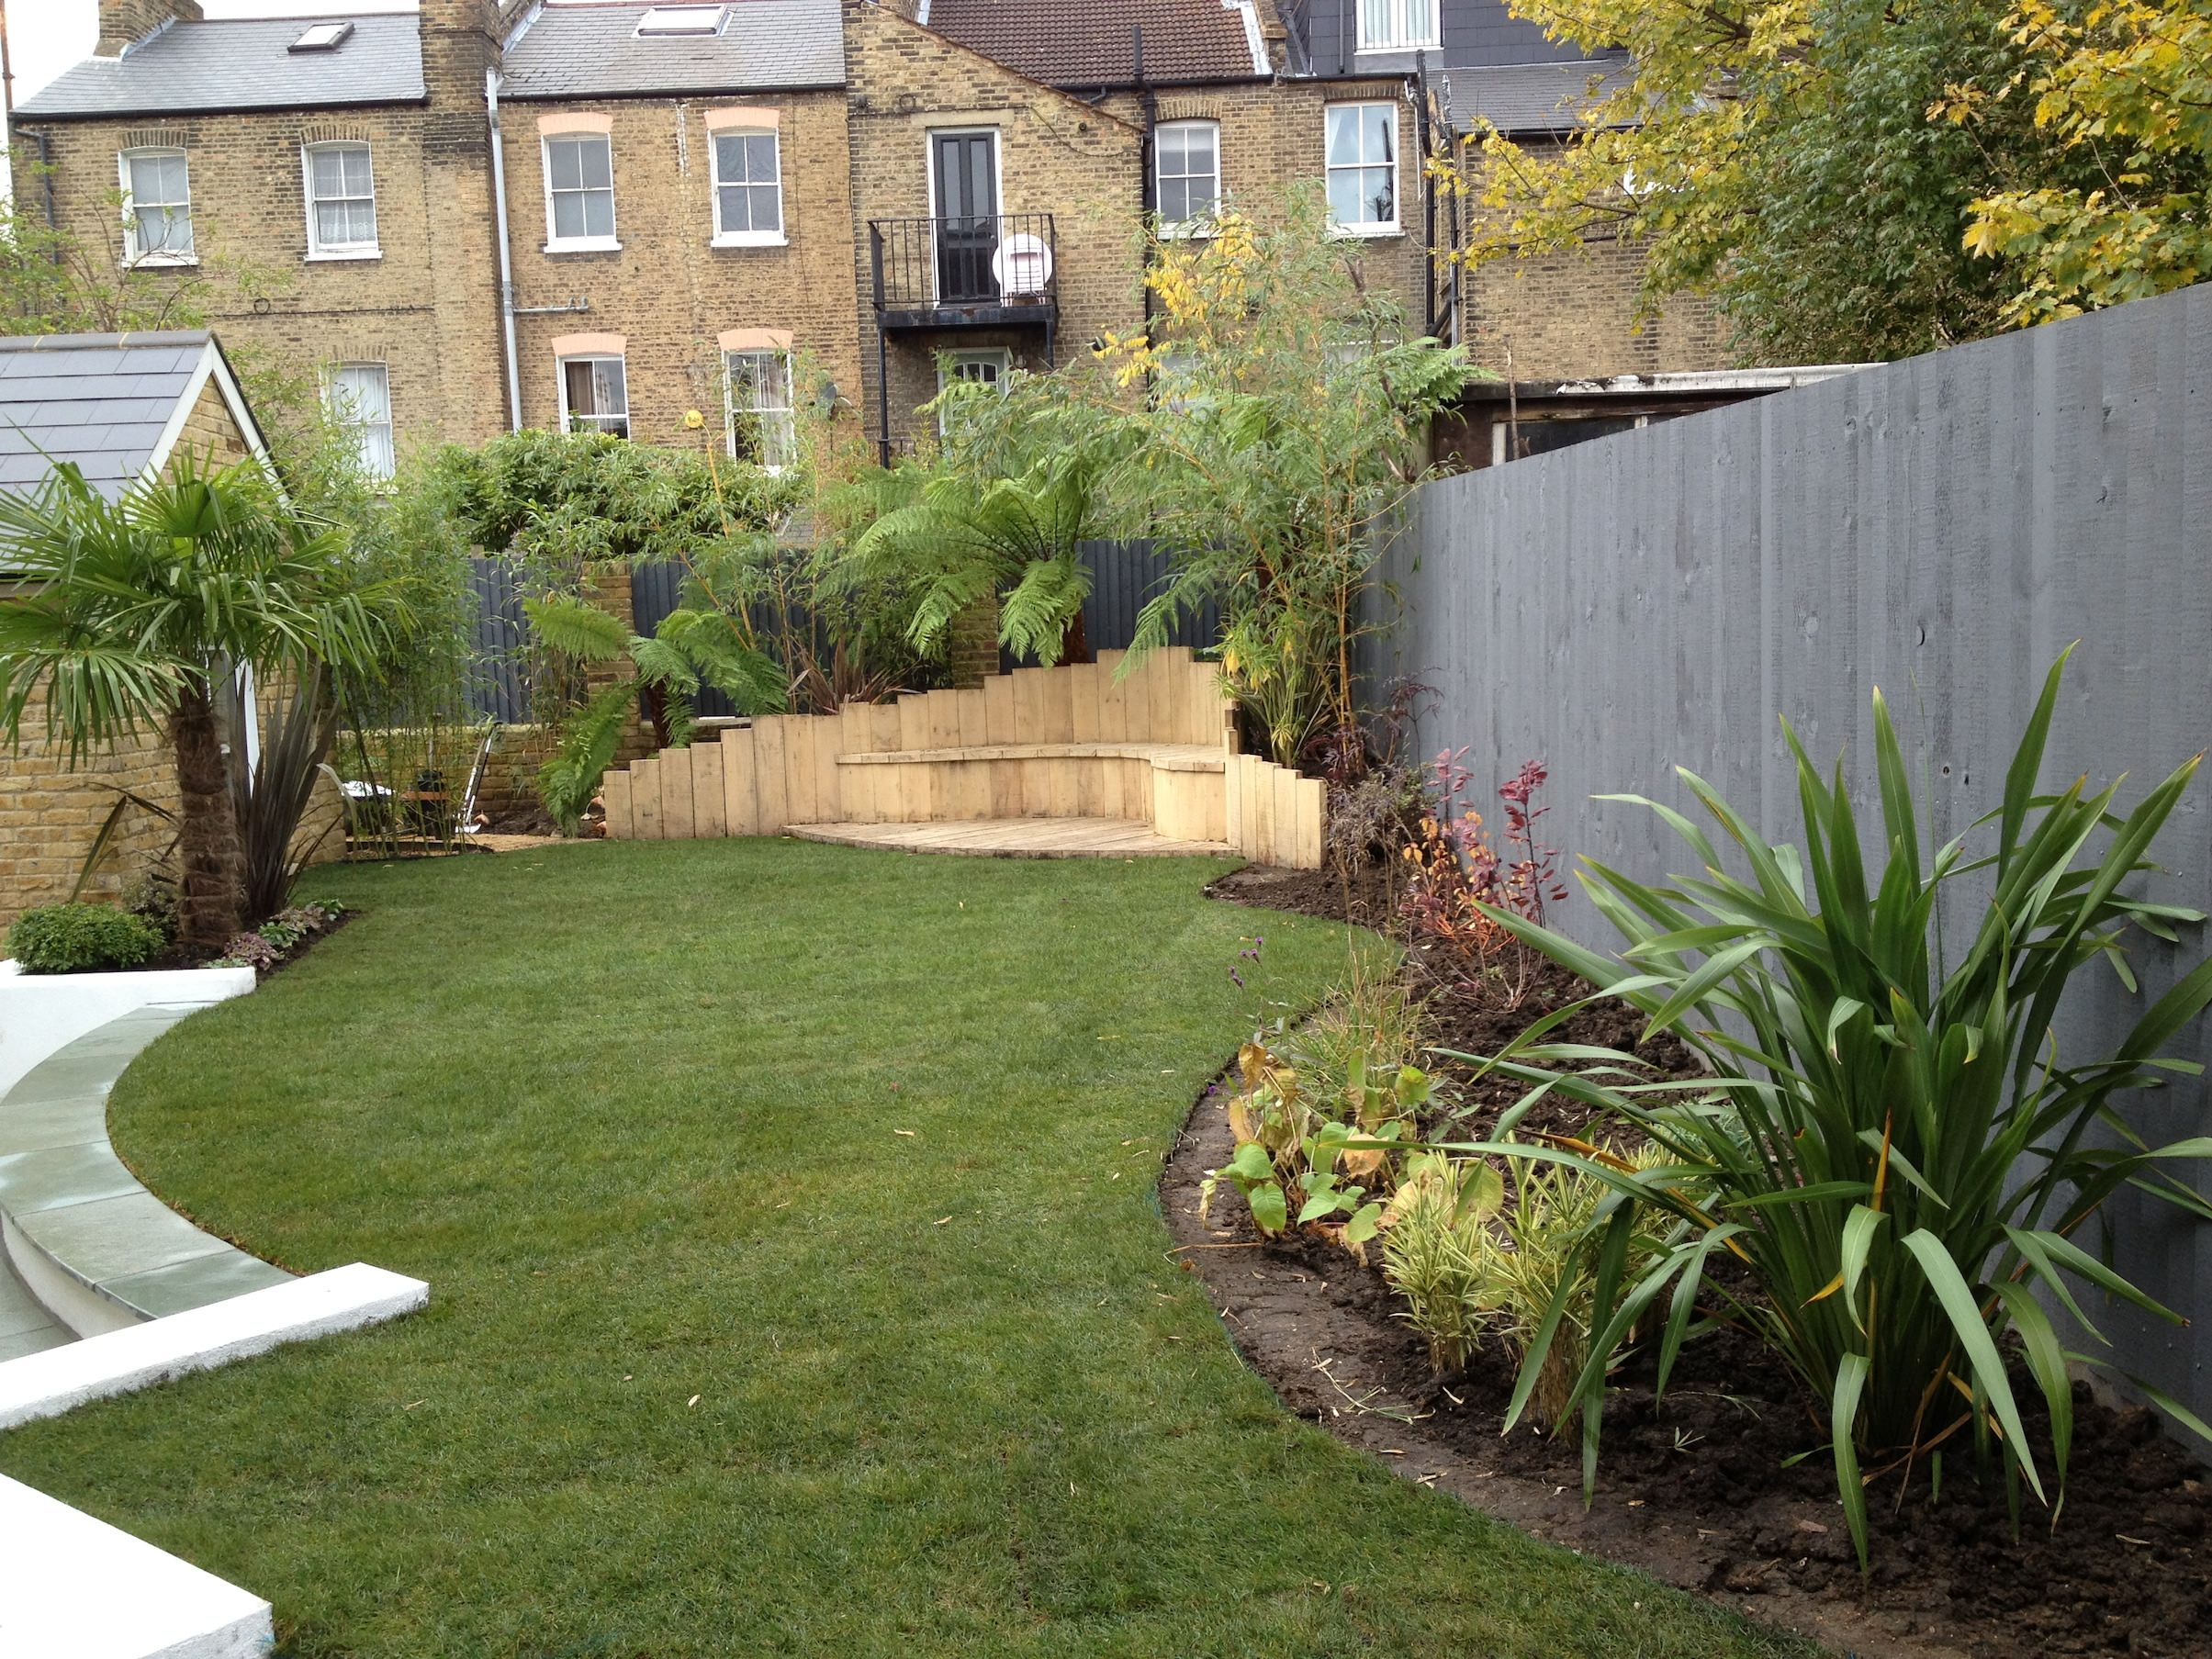 Low maintenance garden designs garden club london for Garden layout ideas